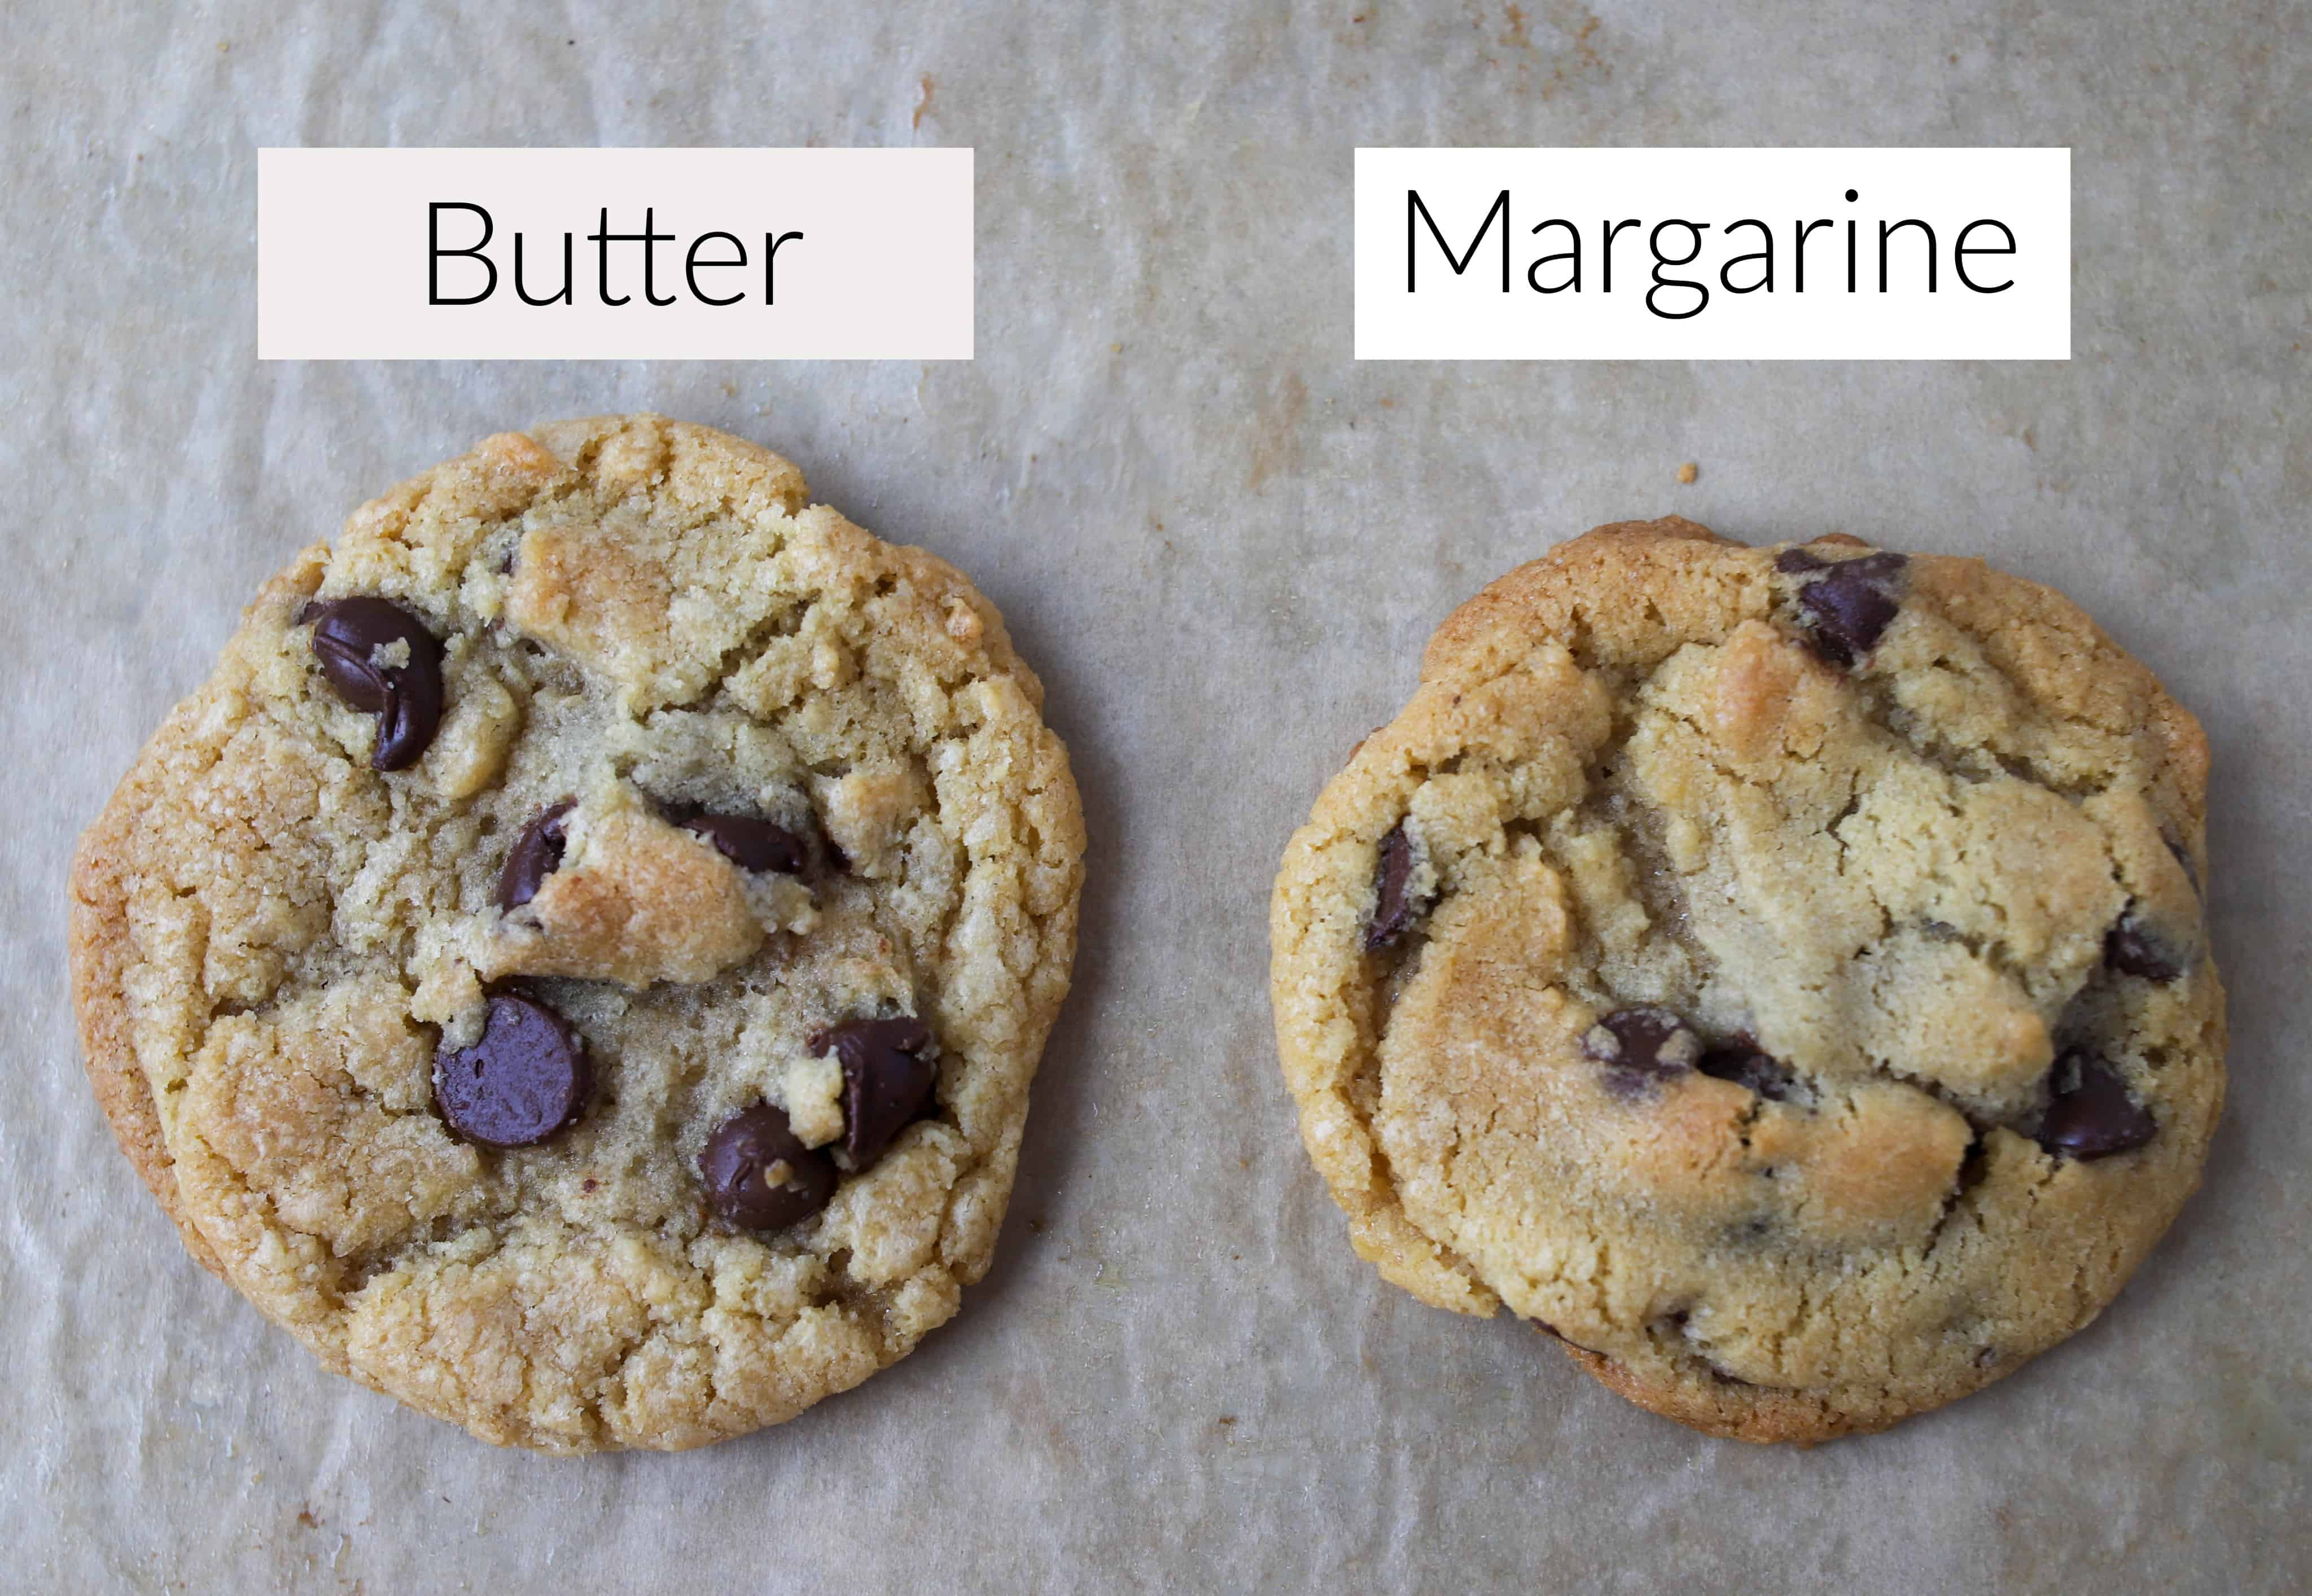 two chocolate chip cookies, one made with butter and one made with margarine